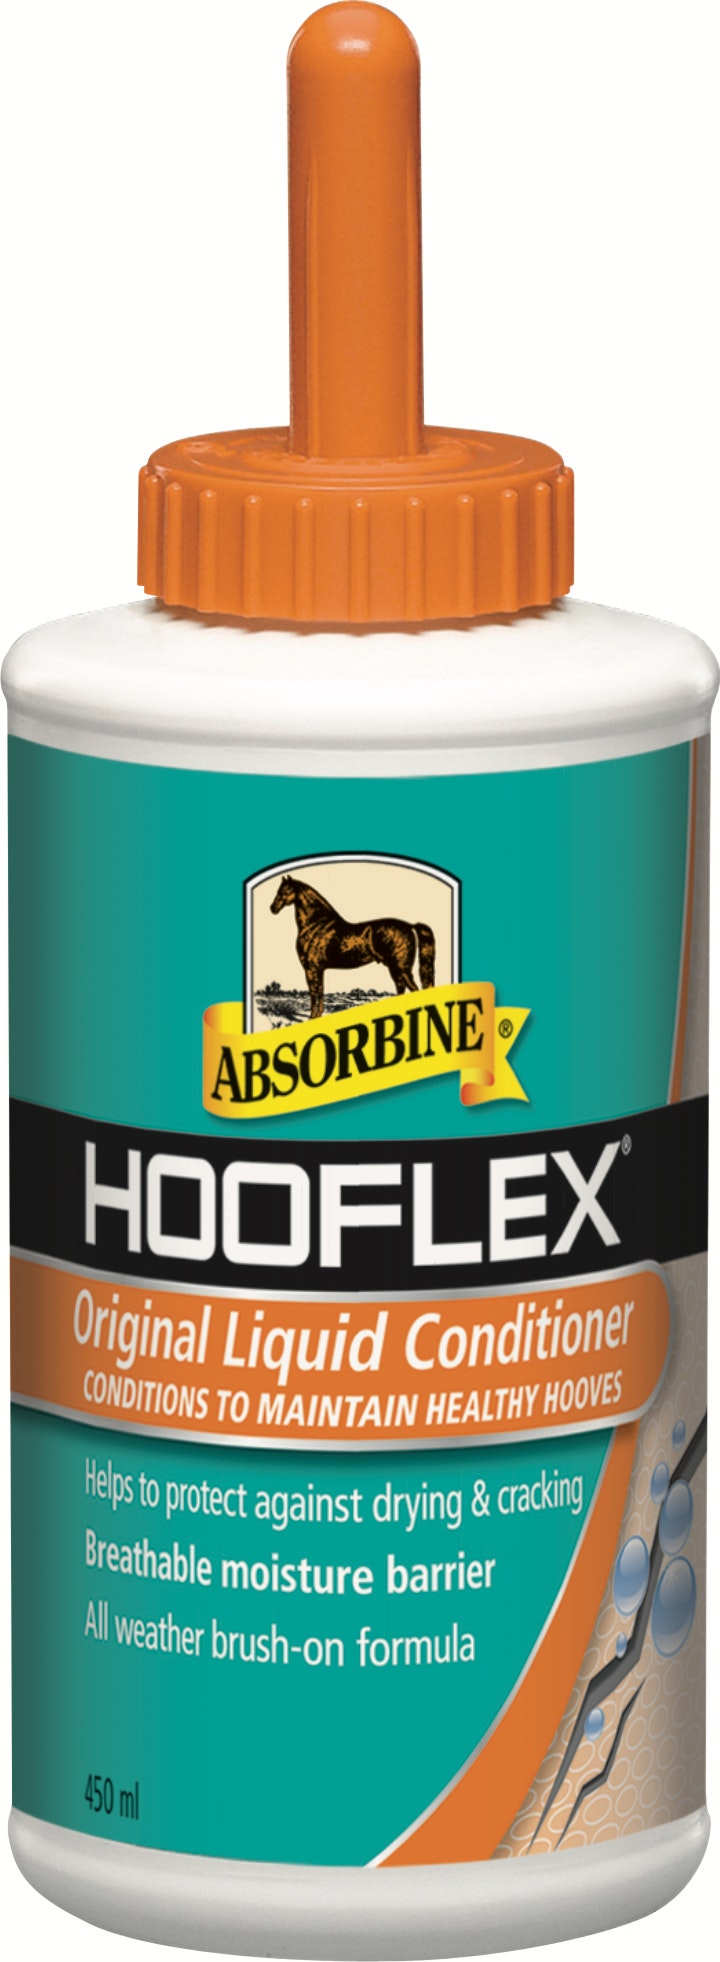 Hooflextc new label